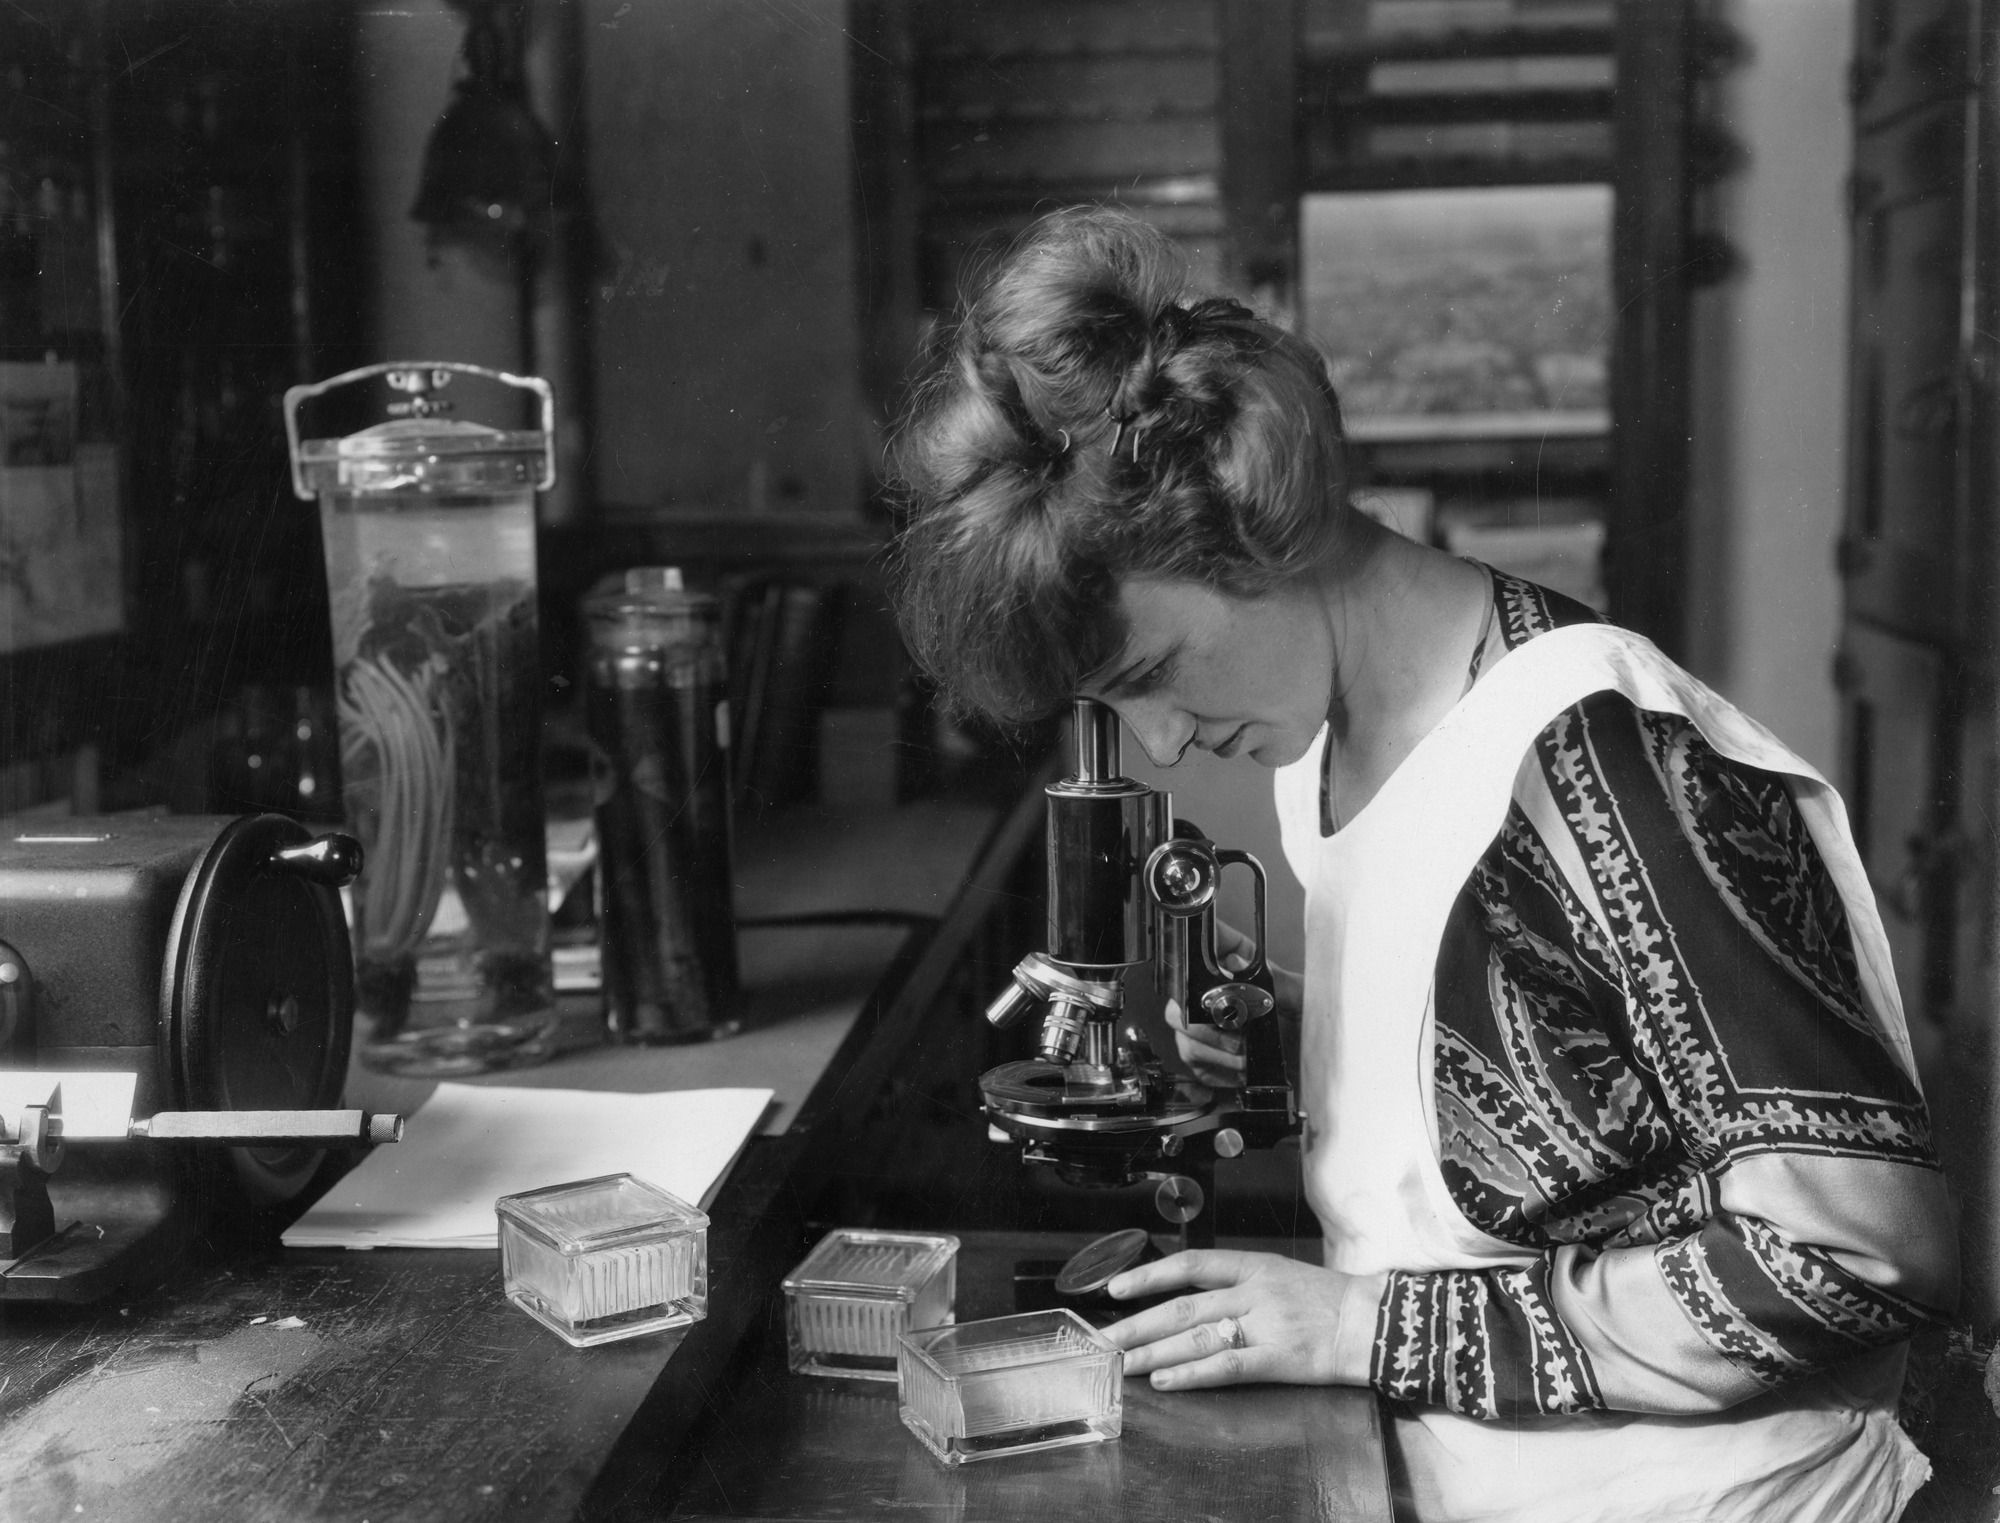 Buried in Footnotes, Women's Scientific Accomplishments Finally Come to Light